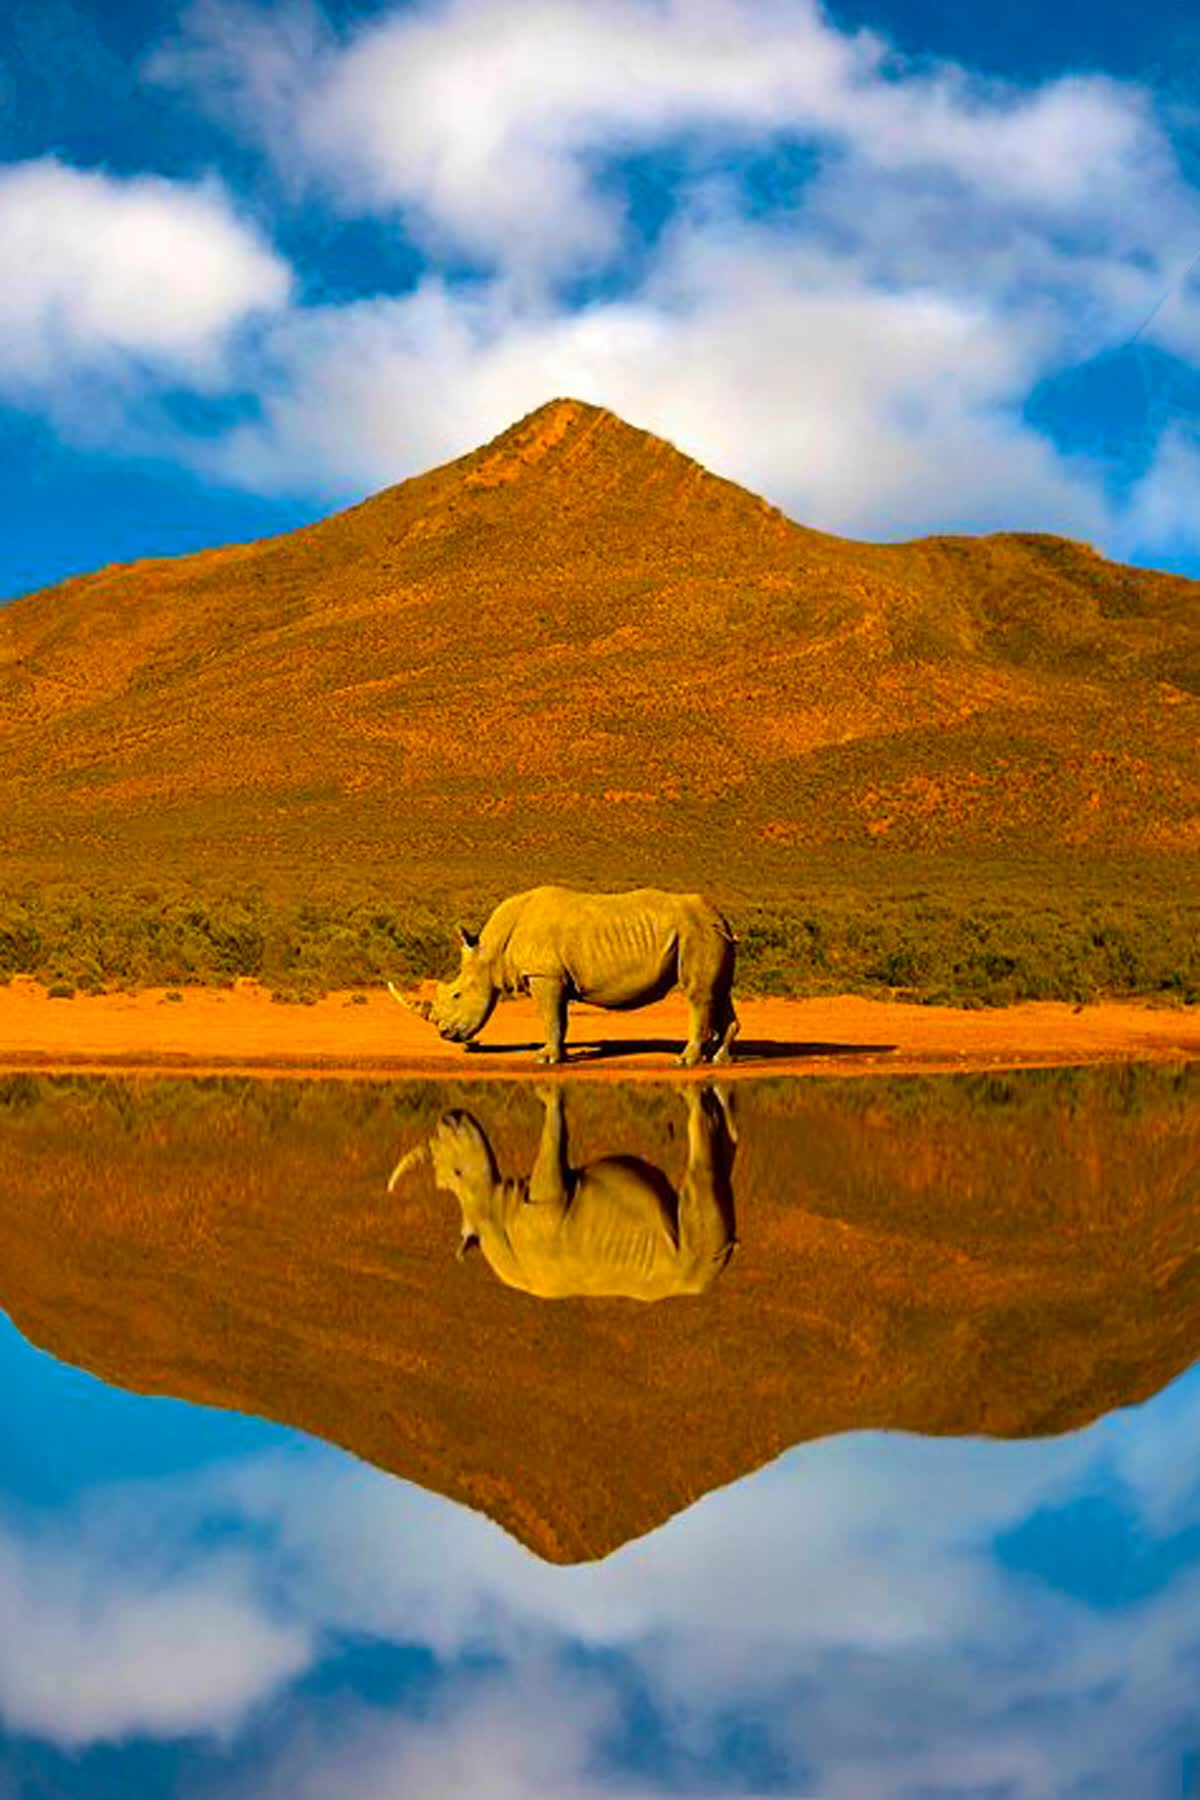 africa, clouds, mountain, nature, reflection, rhino, rhinoceros, water, Africa's Treasure GIFs